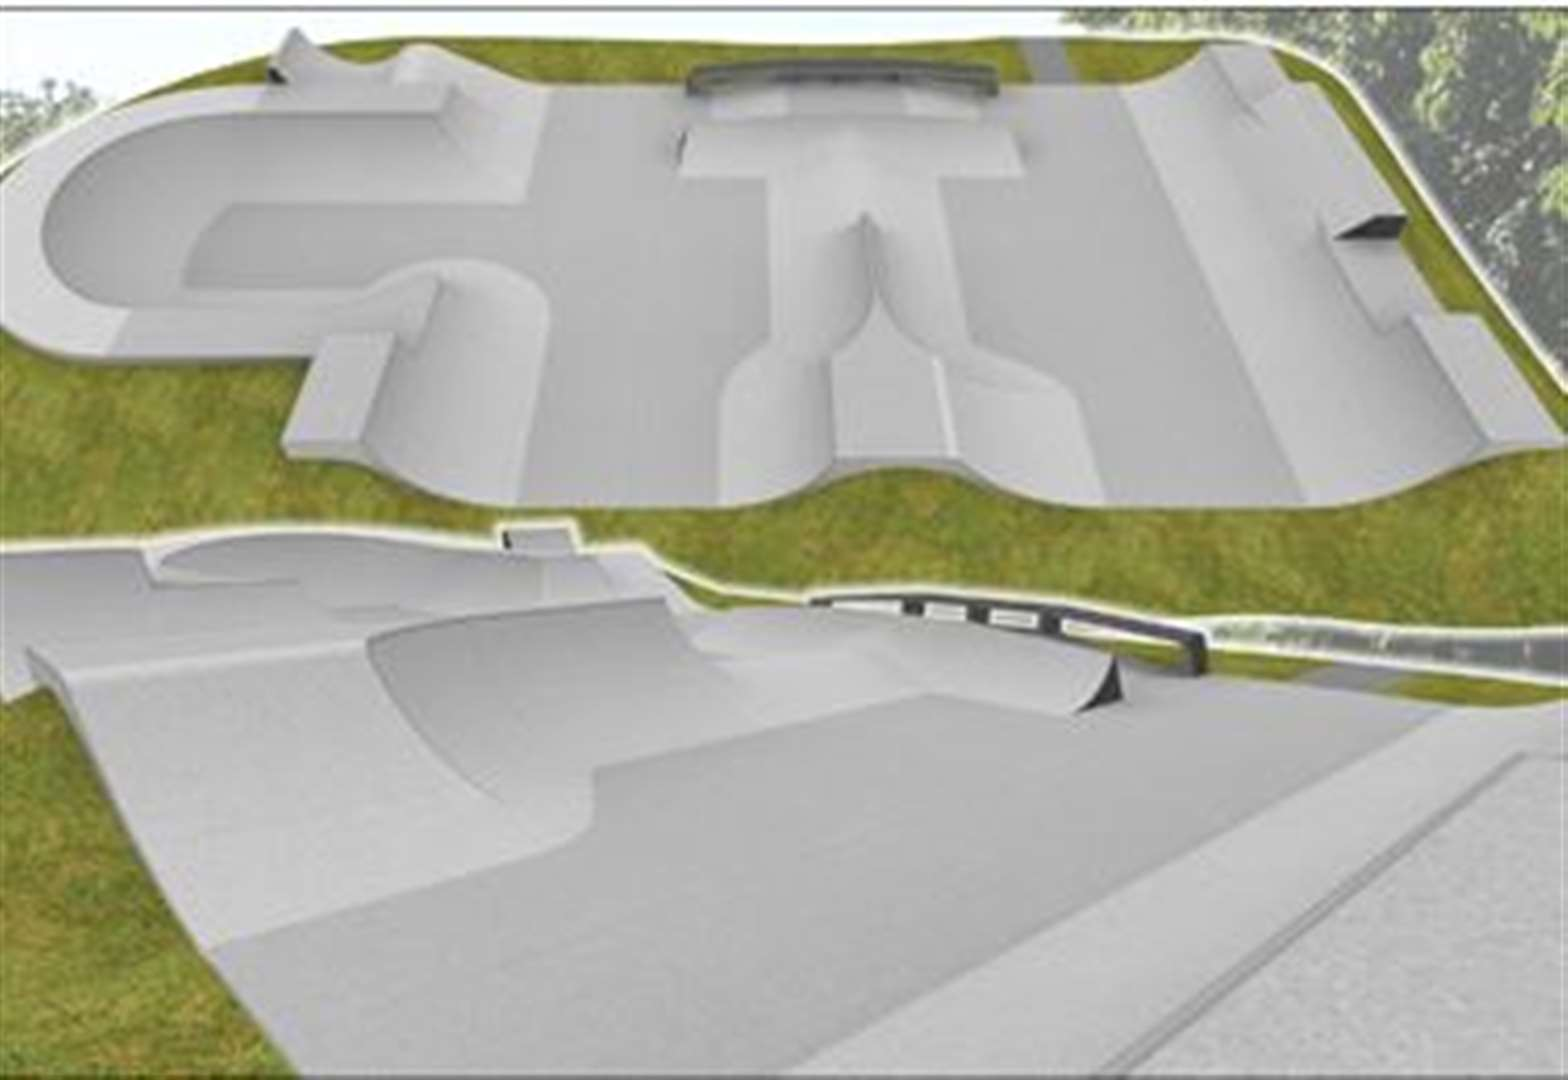 Newmarket moves step closer to new skatepark